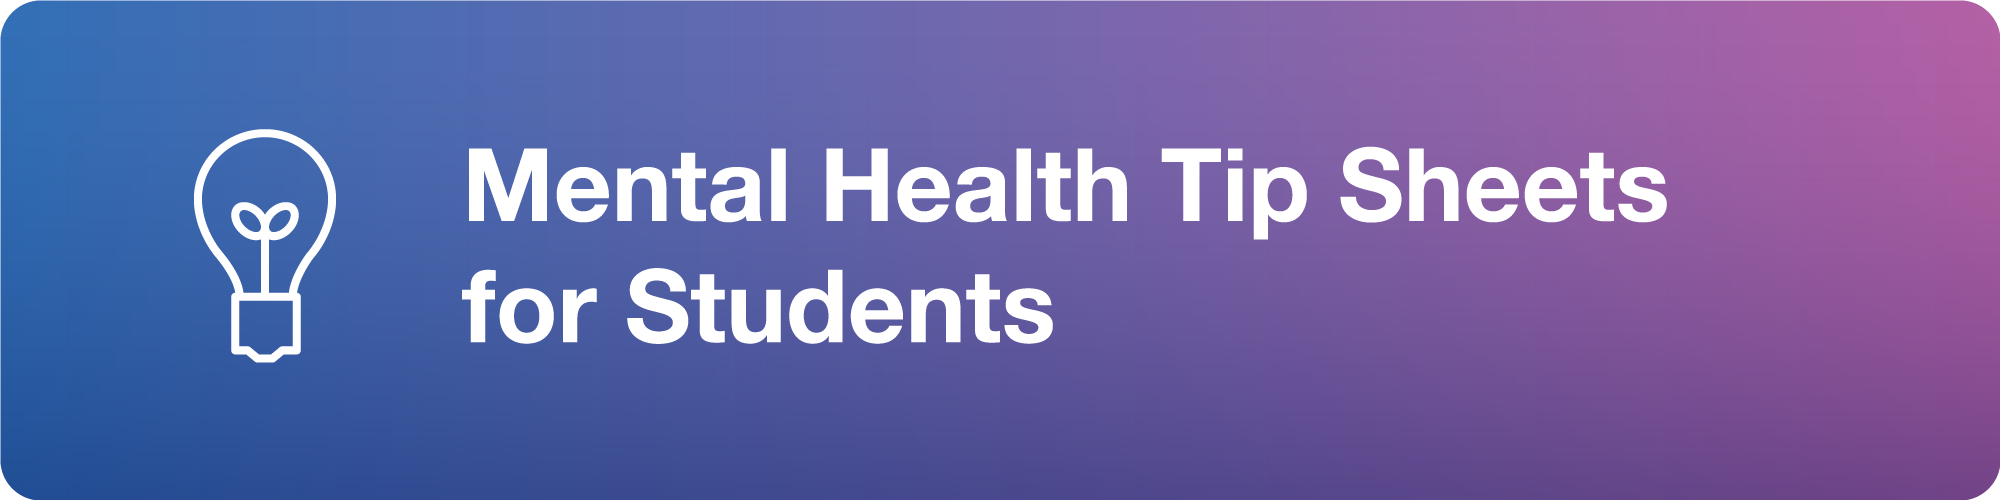 Mental health tip sheets for students